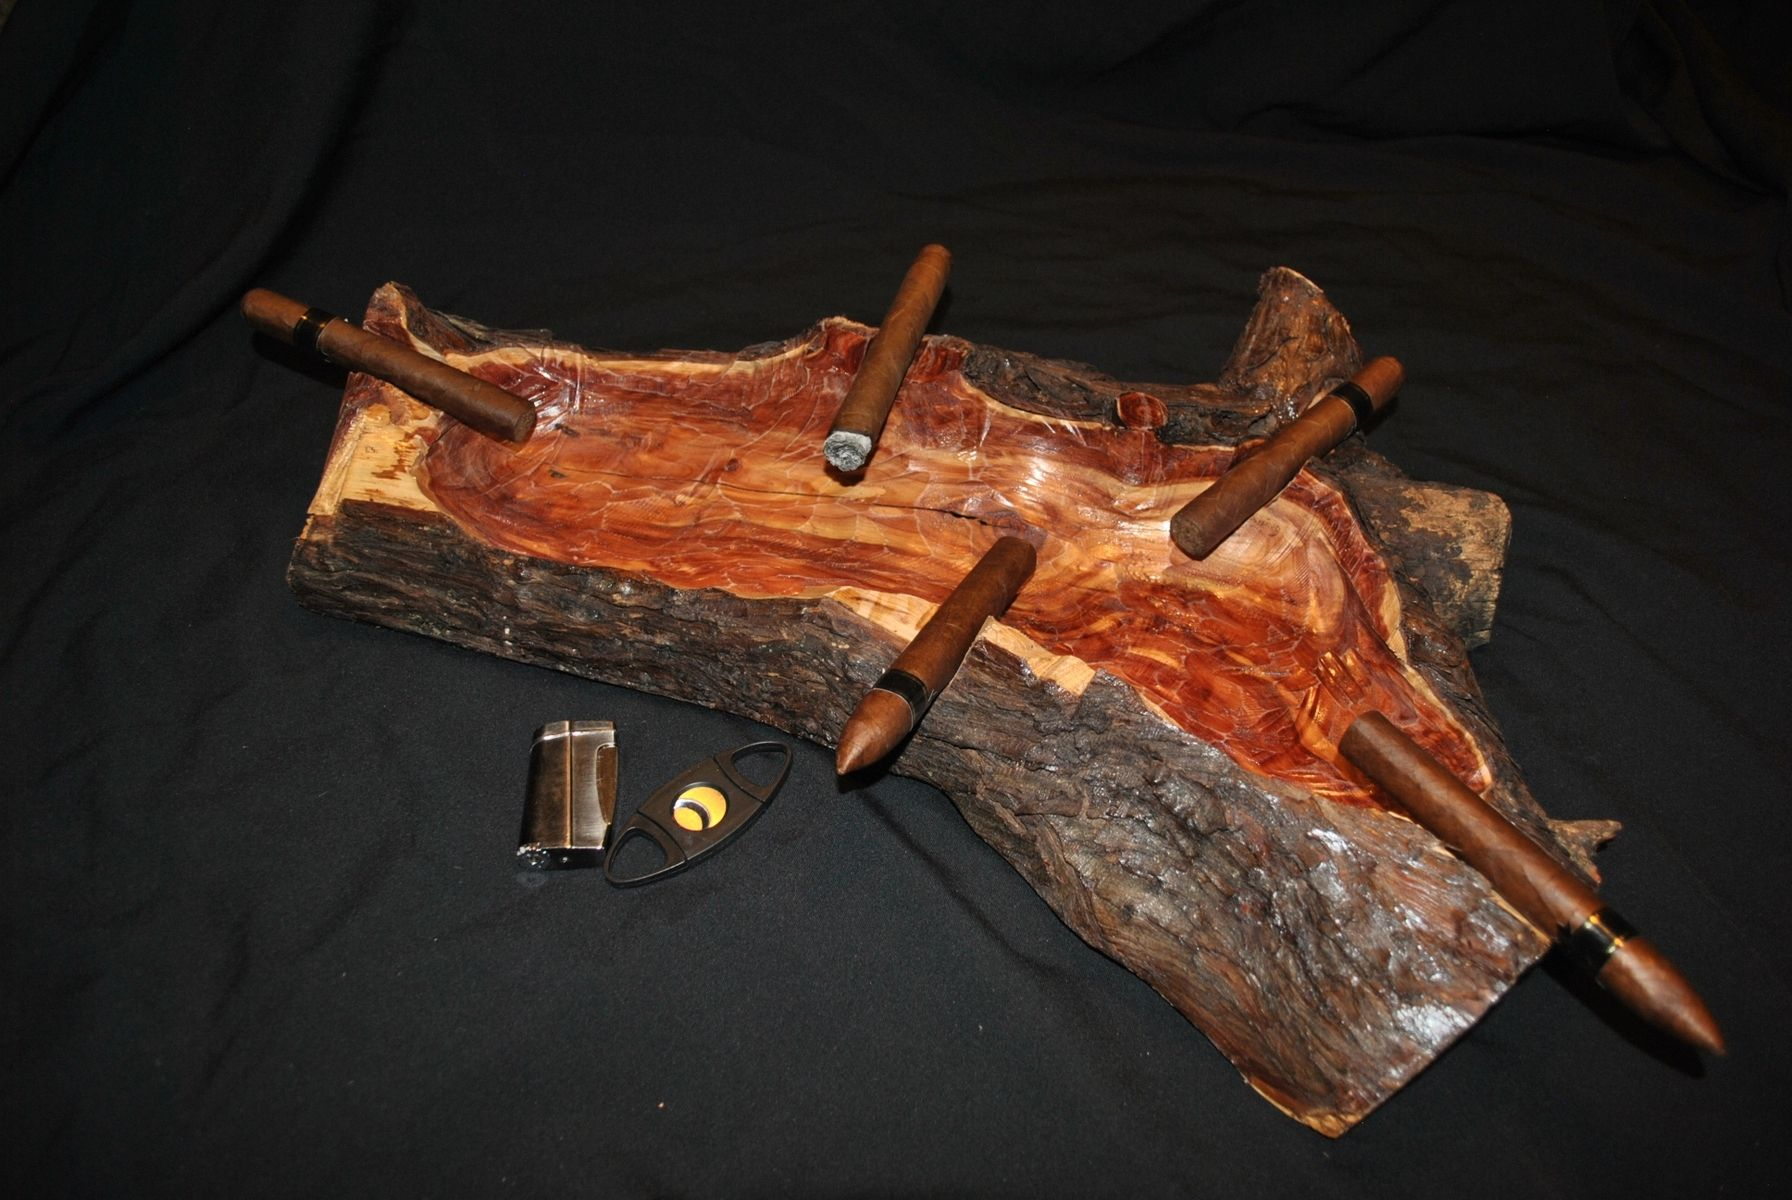 Custom Made Hand Crafted Ashtrays By Artisan Decorative